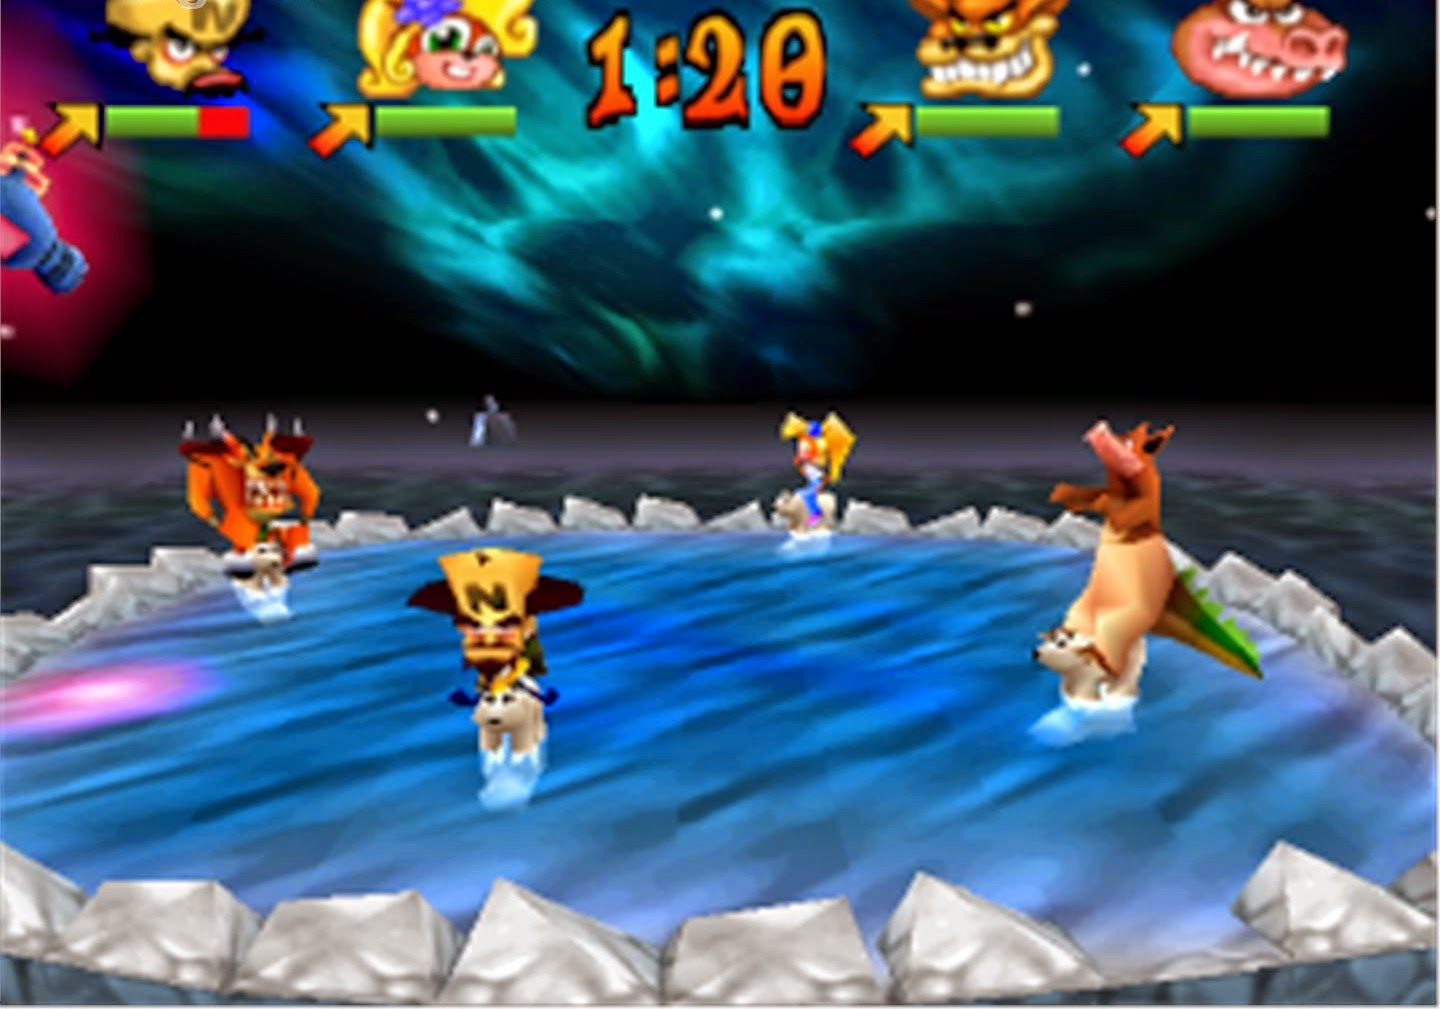 Crash Bash Game - Free Download Full Version For PC